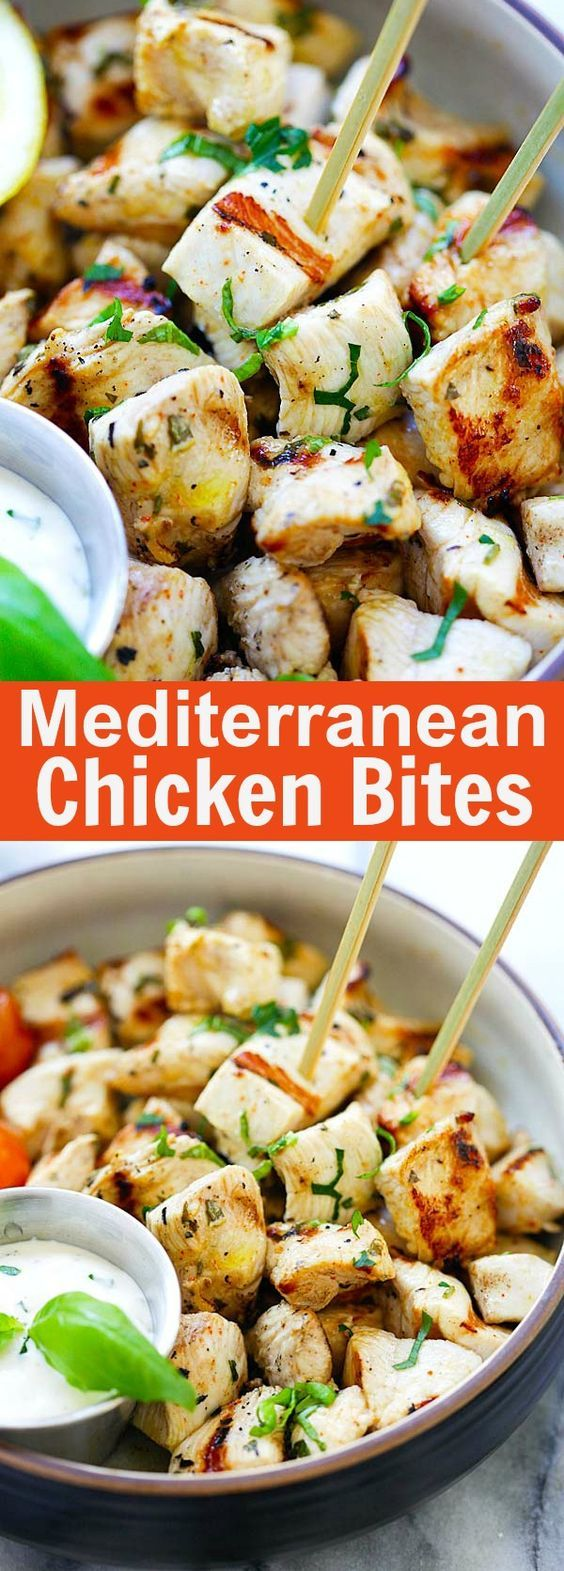 Mediterranean Chicken Bites – juicy, tender and the most flavorful chicken bites with Mediterranean marinade. So easy to make and delicious | rasamalaysia.com